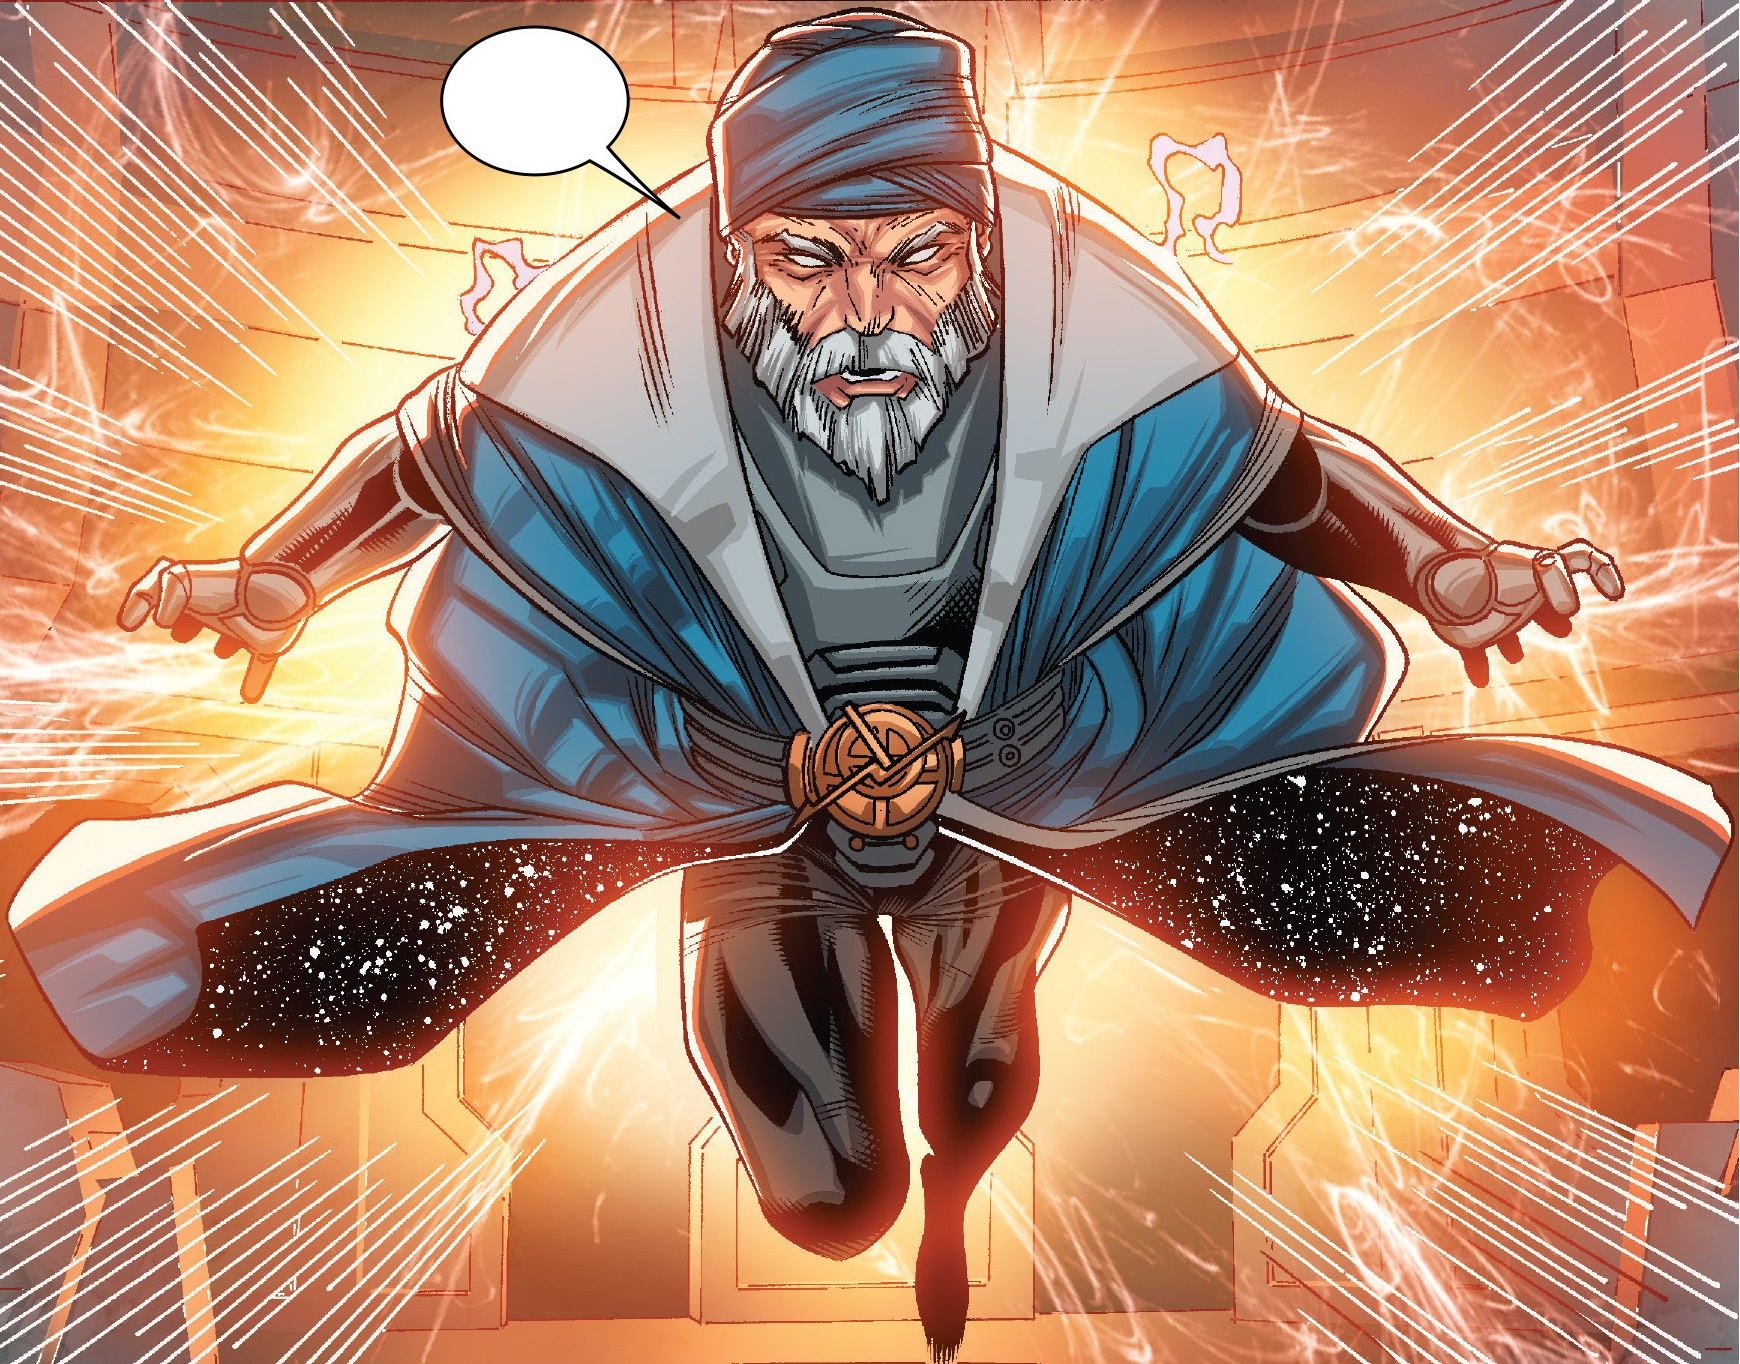 Al-Hasan (Earth-616)